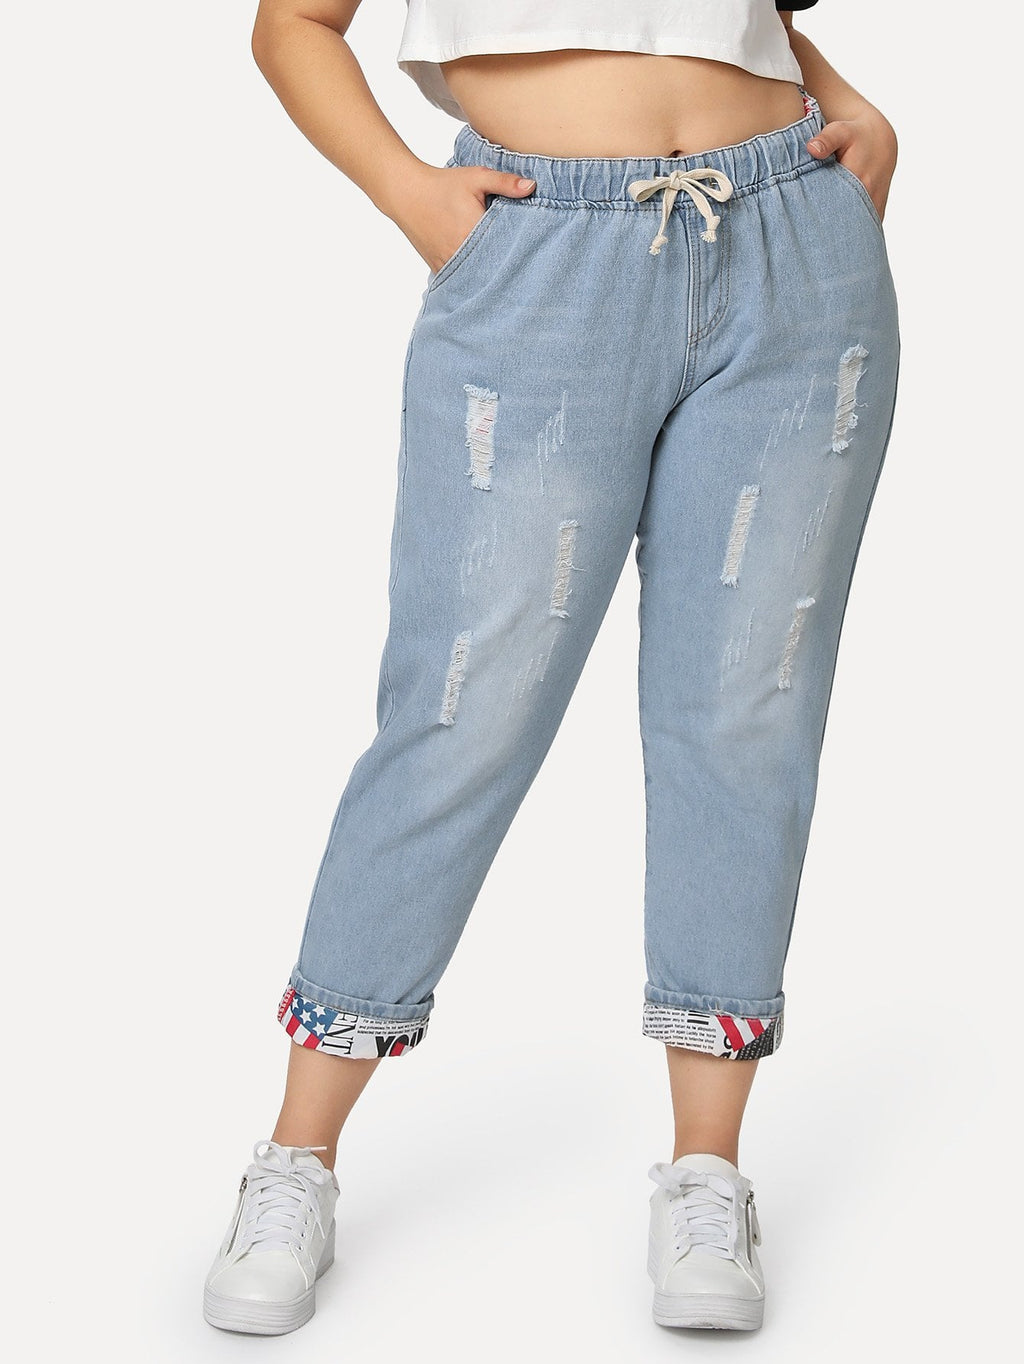 Plus Size Jeans - Tie Waist Ripped Jeans